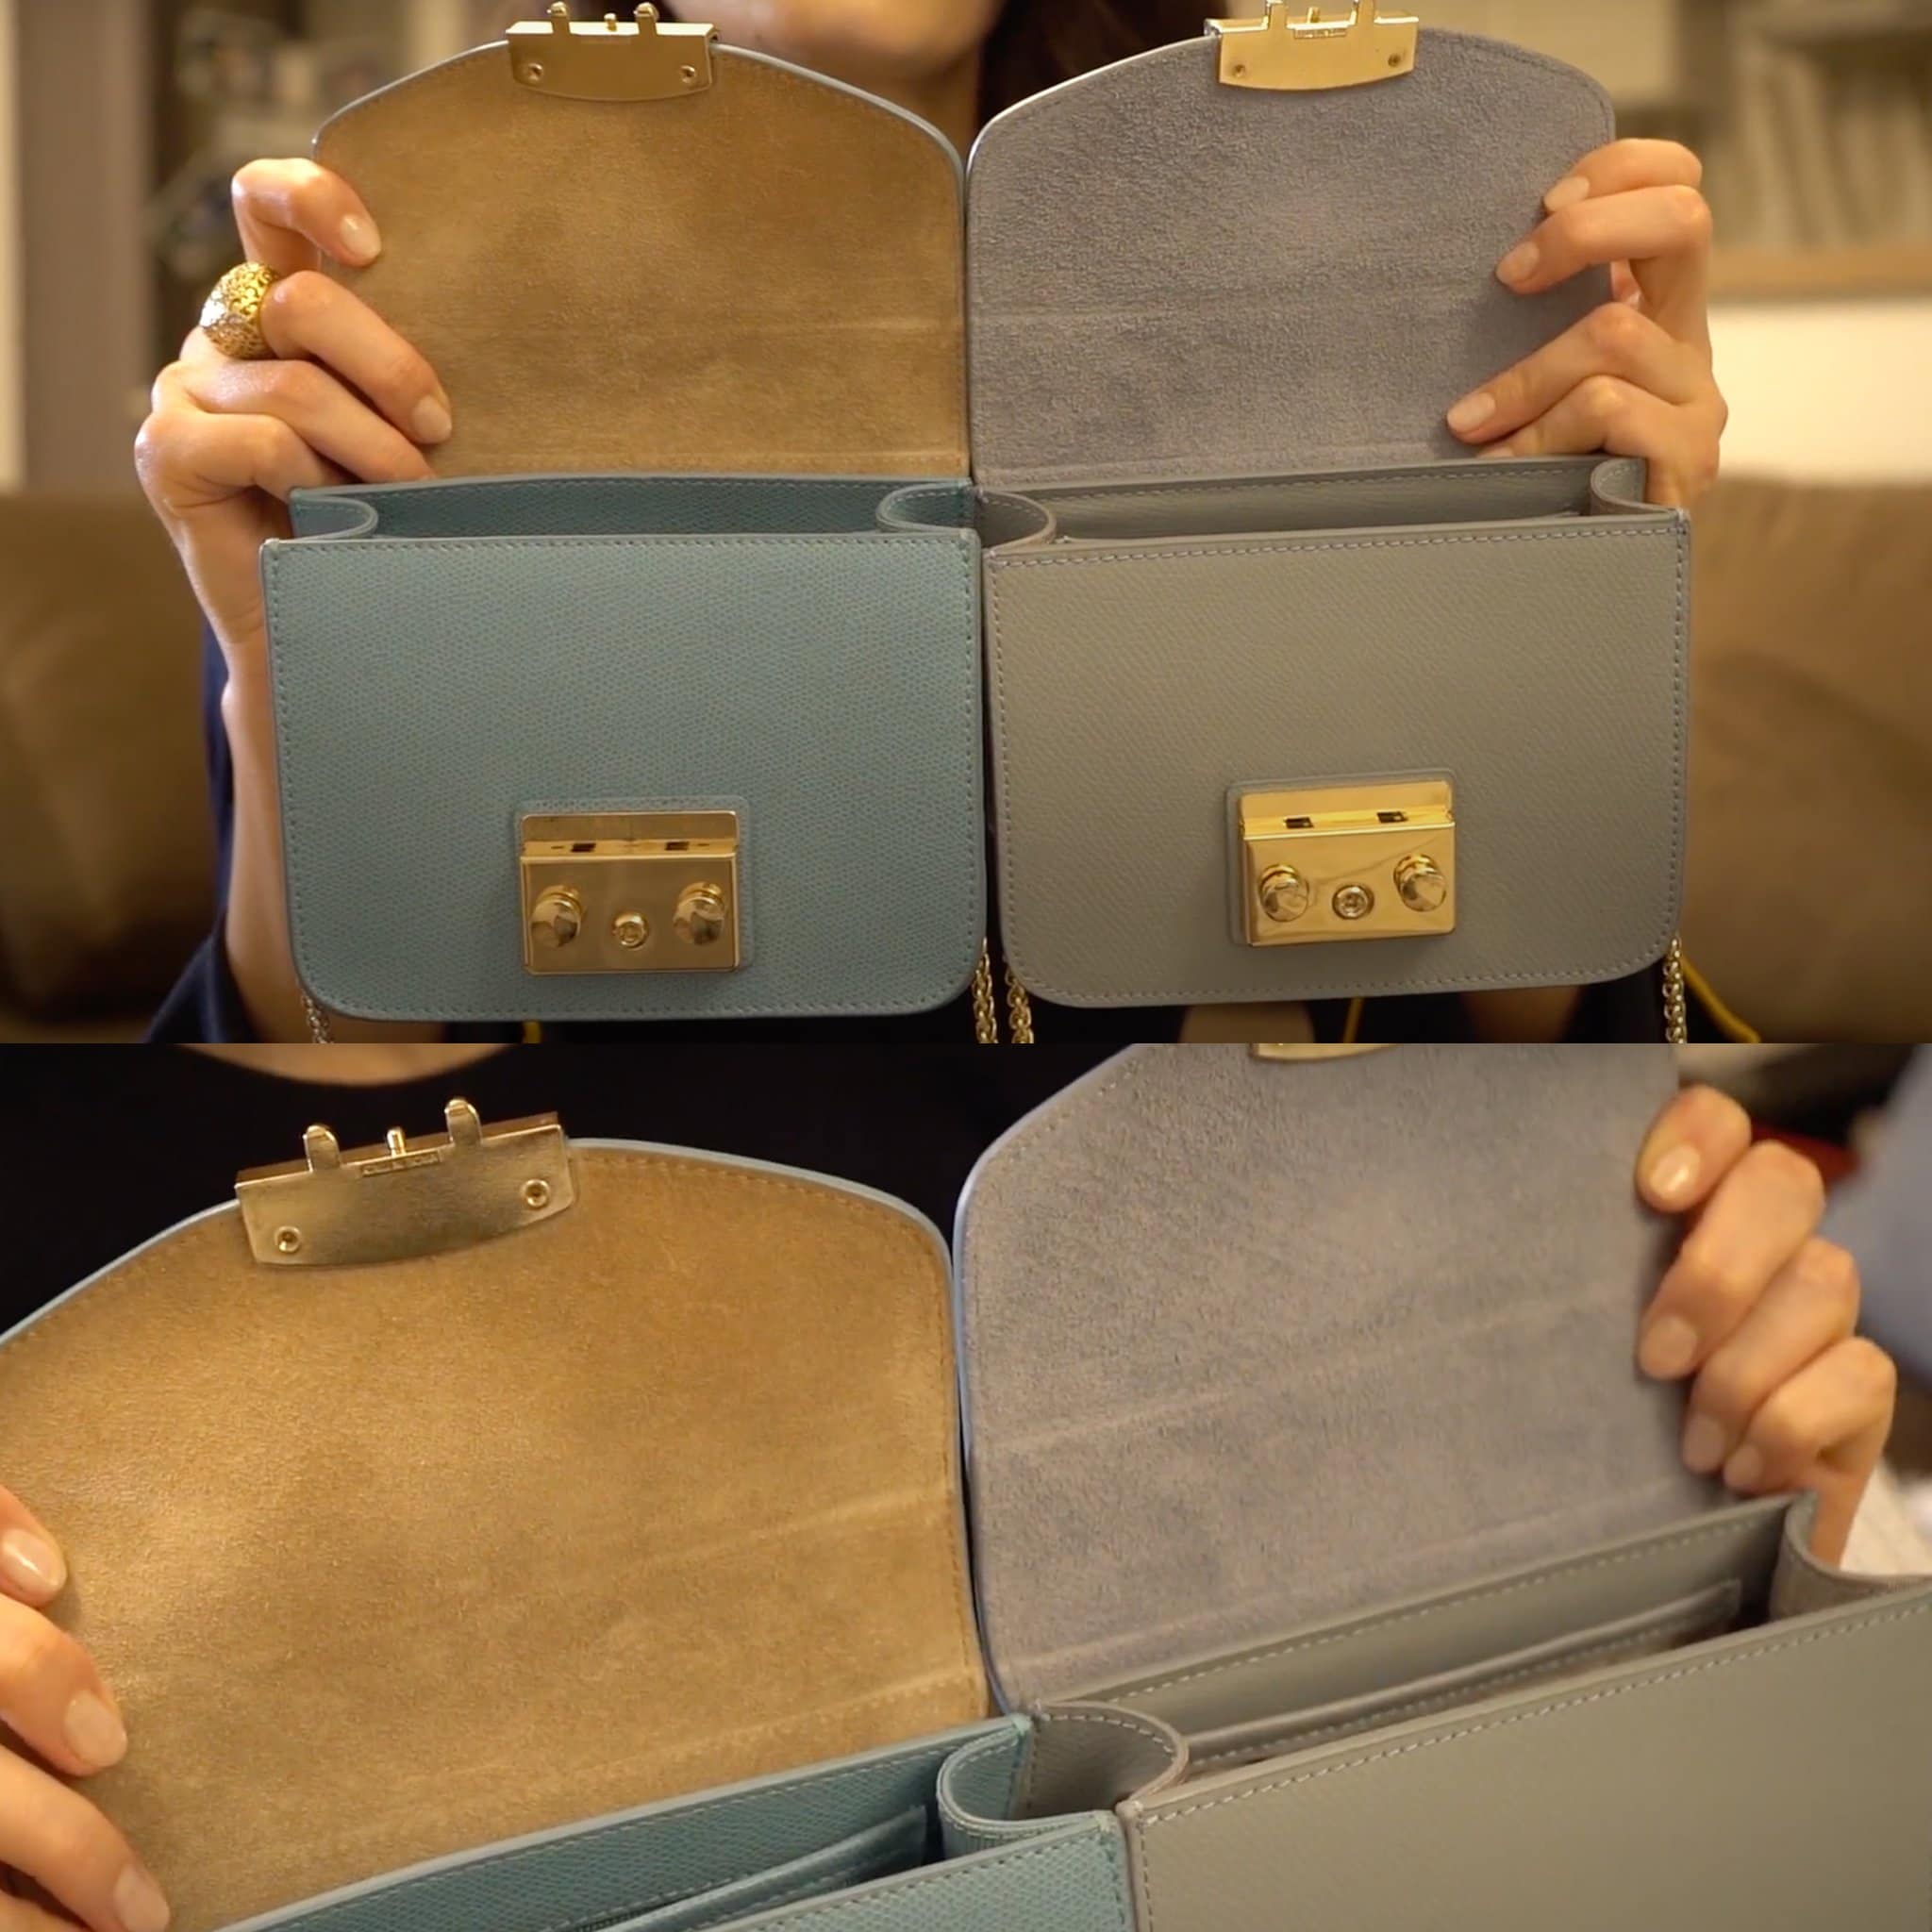 The interior of the fake Furla bag (right) isn't as soft as the genuine suede interior on the real Furla bag (left)